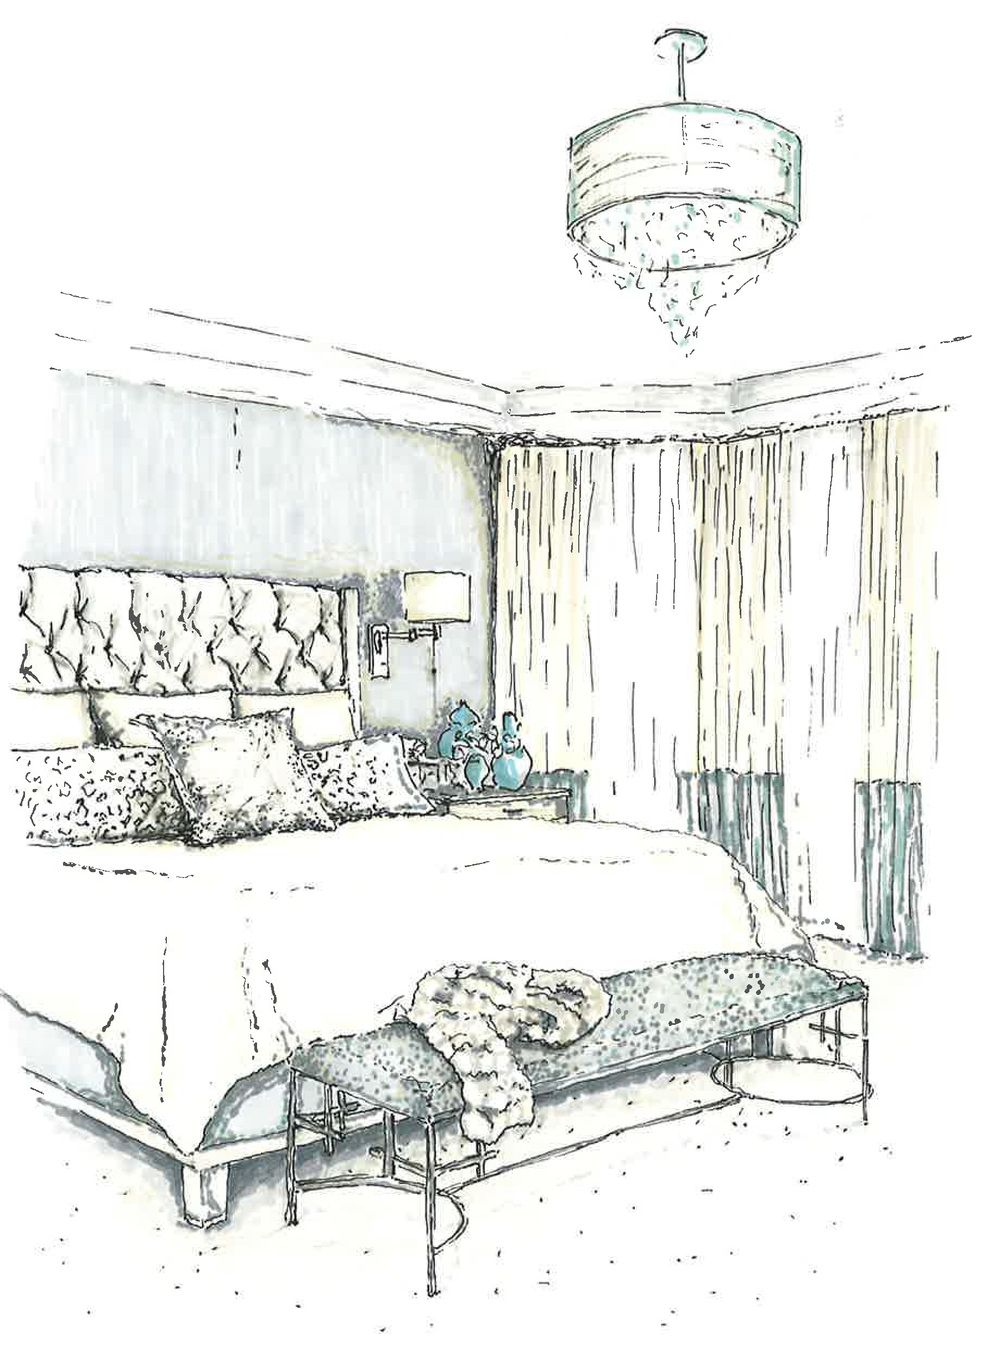 Bedroom Drawing: Interior + Architectural Ink Rendered Hand Drawings